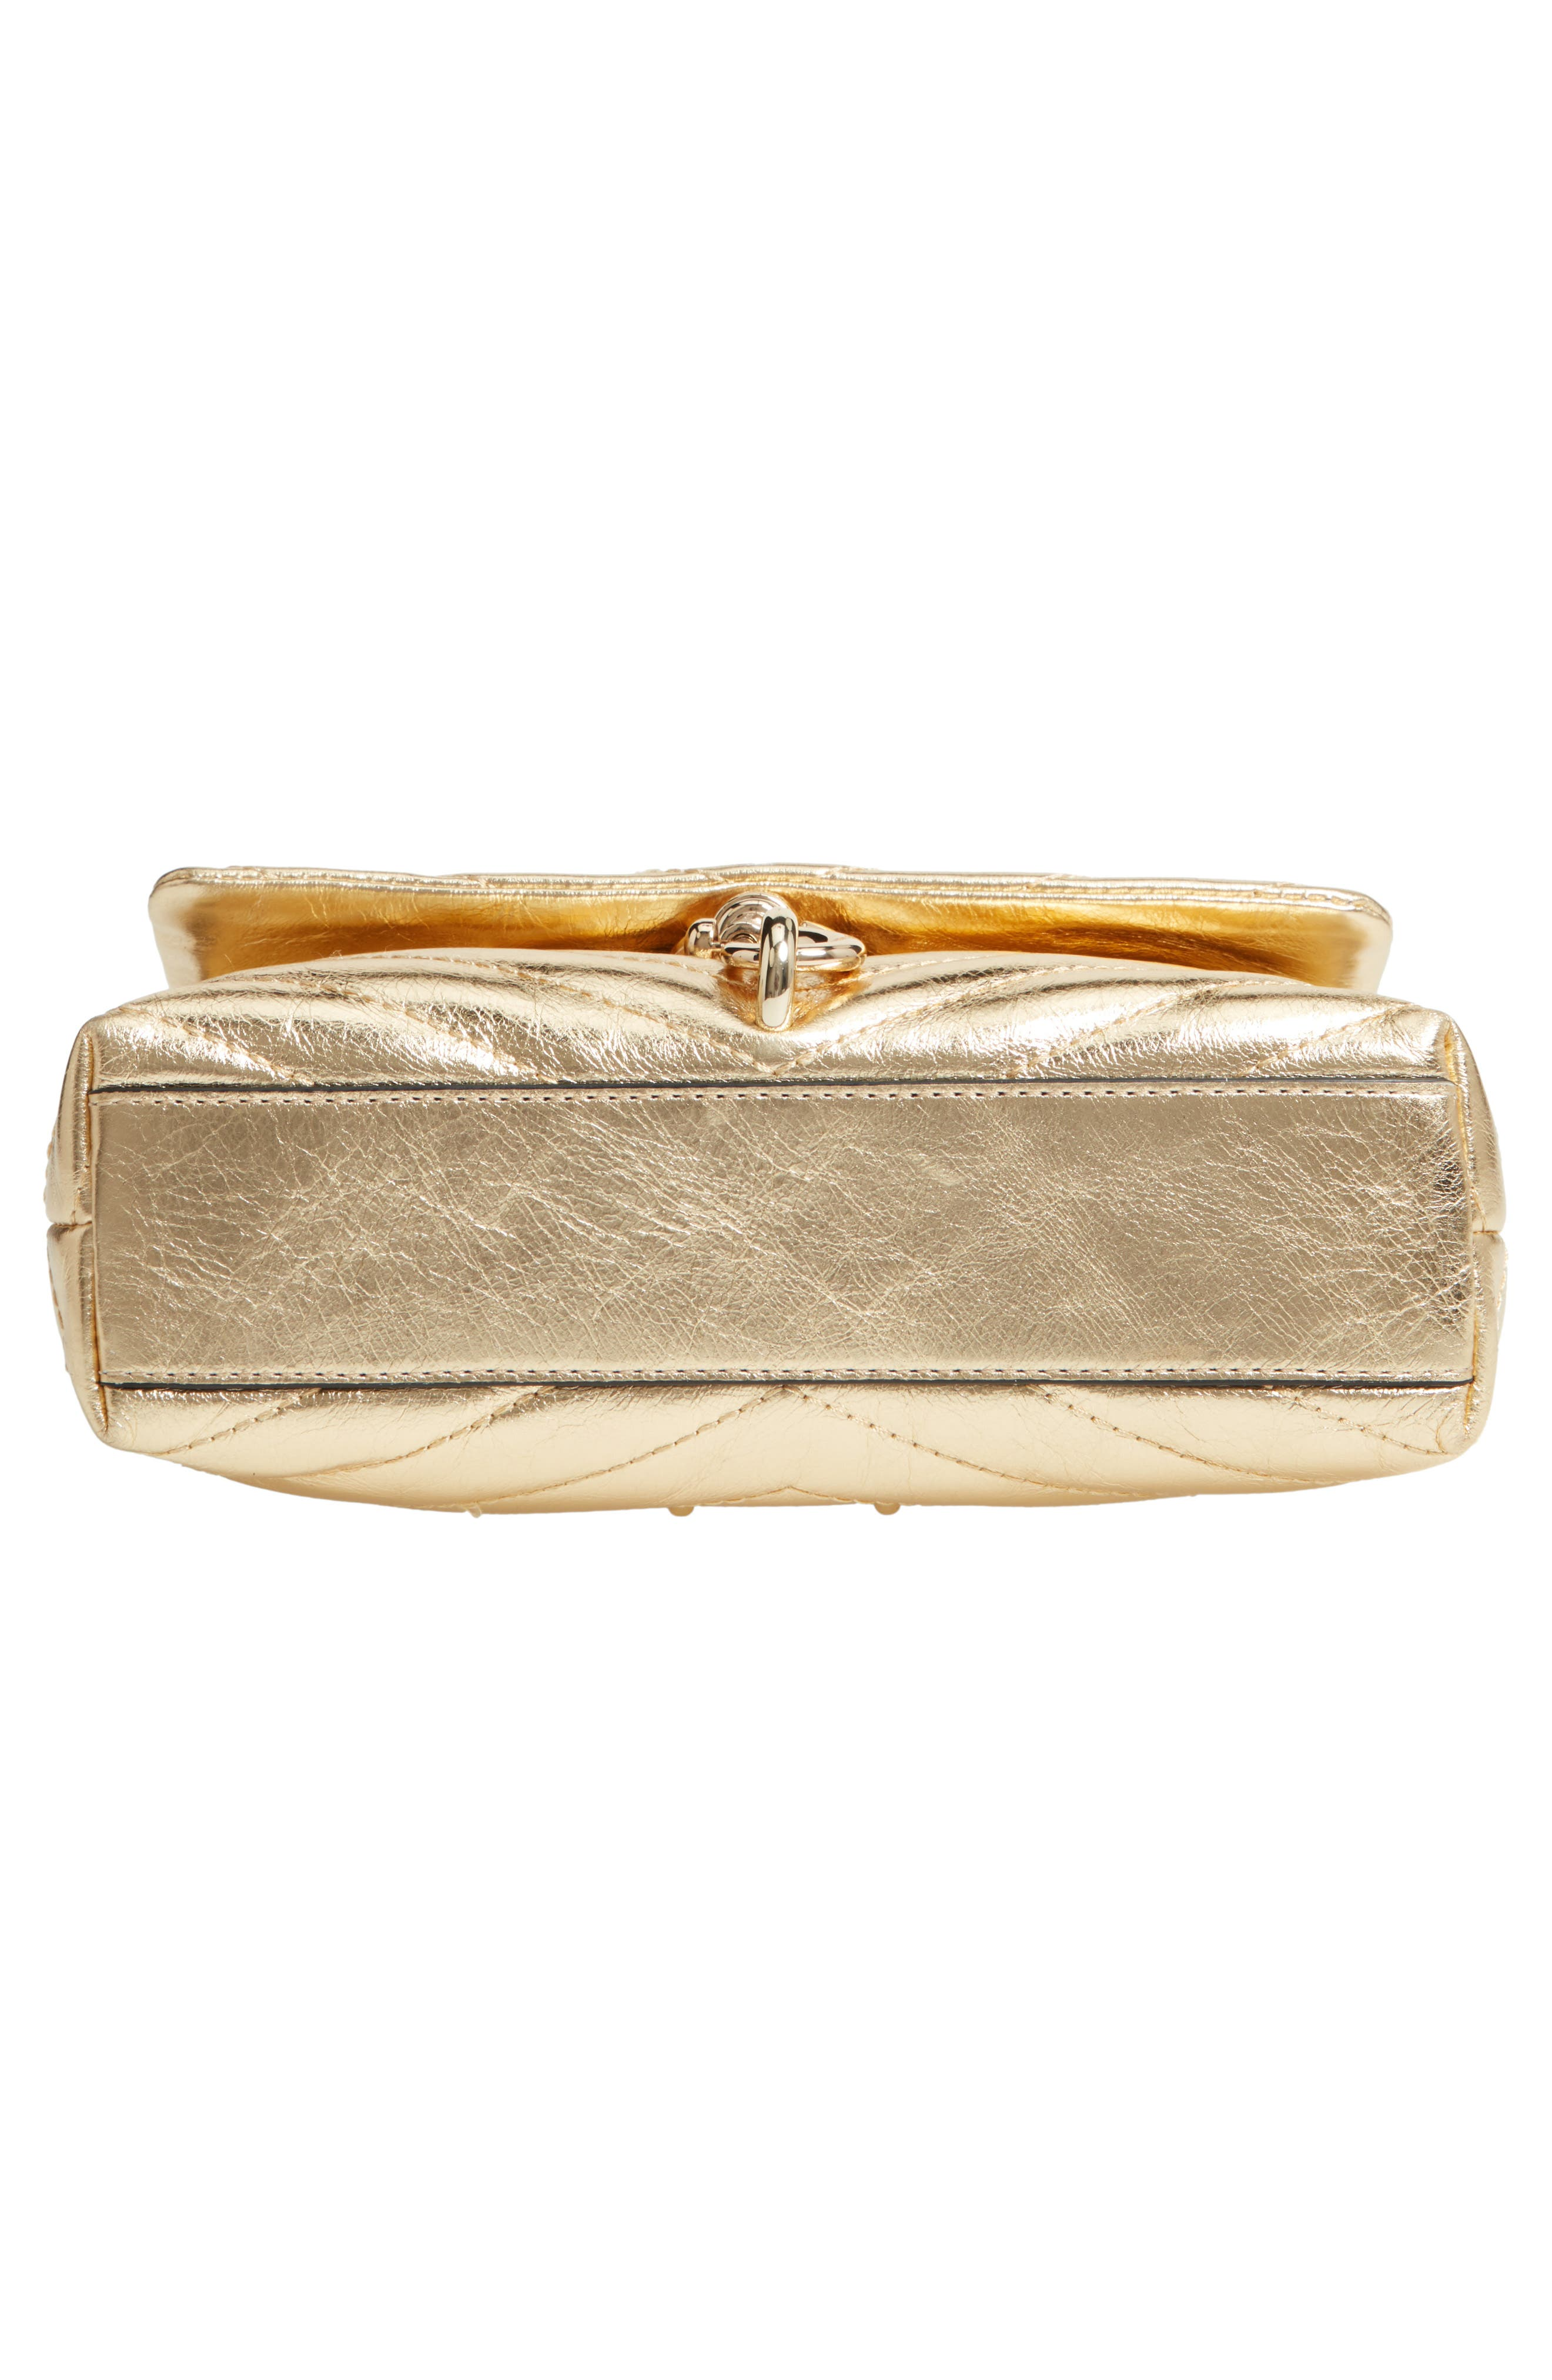 Edie Metallic Leather Shoulder Bag,                             Alternate thumbnail 6, color,                             GOLD